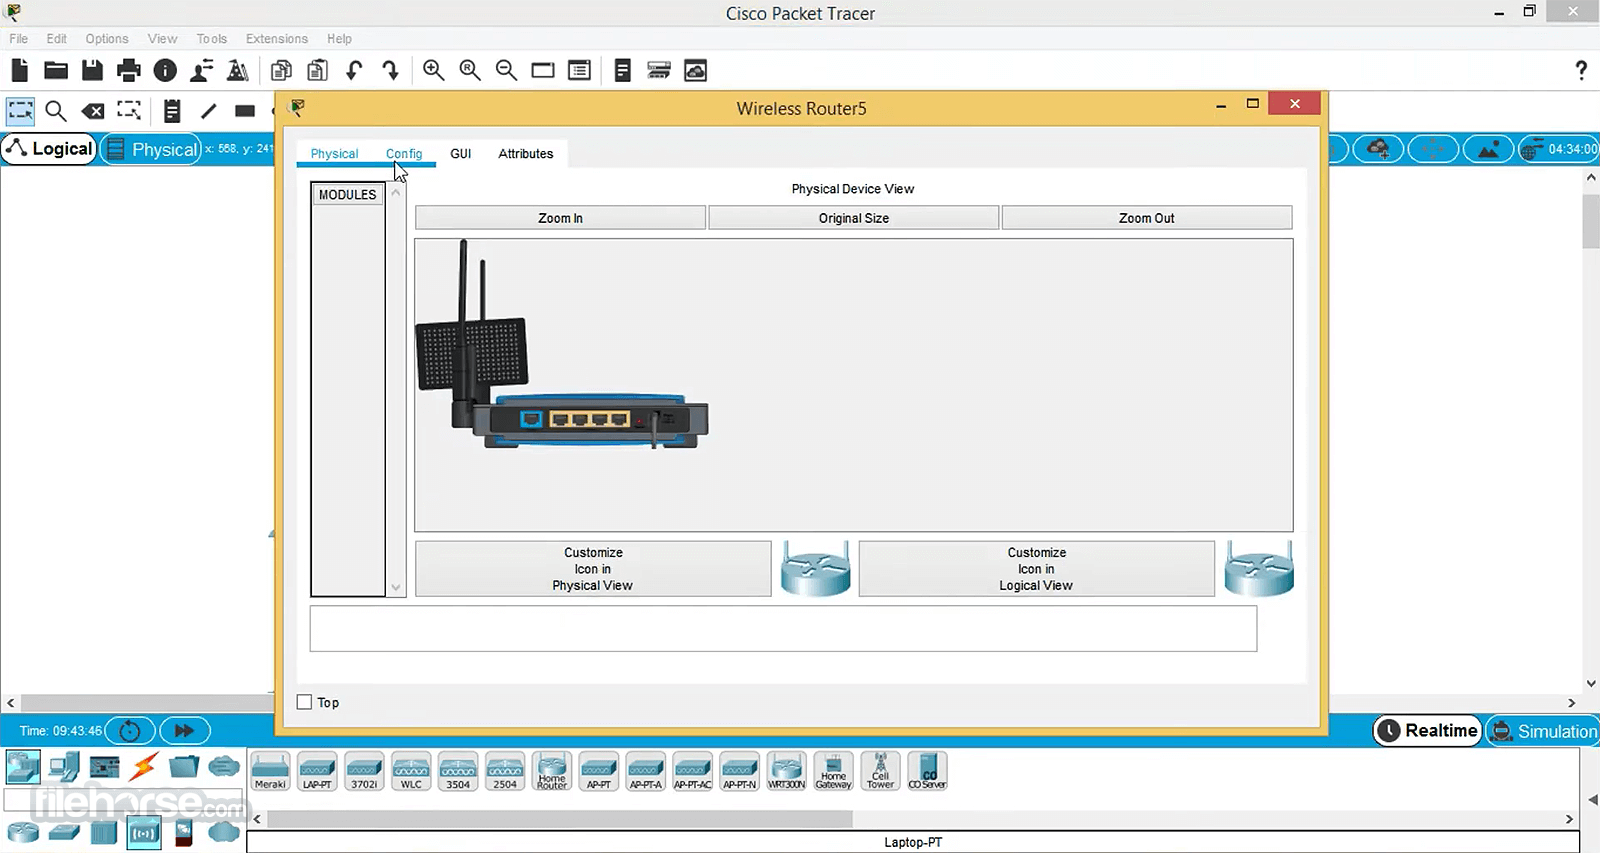 PACKET TÉLÉCHARGER TRACER 5.3.2 GRATUITEMENT CISCO